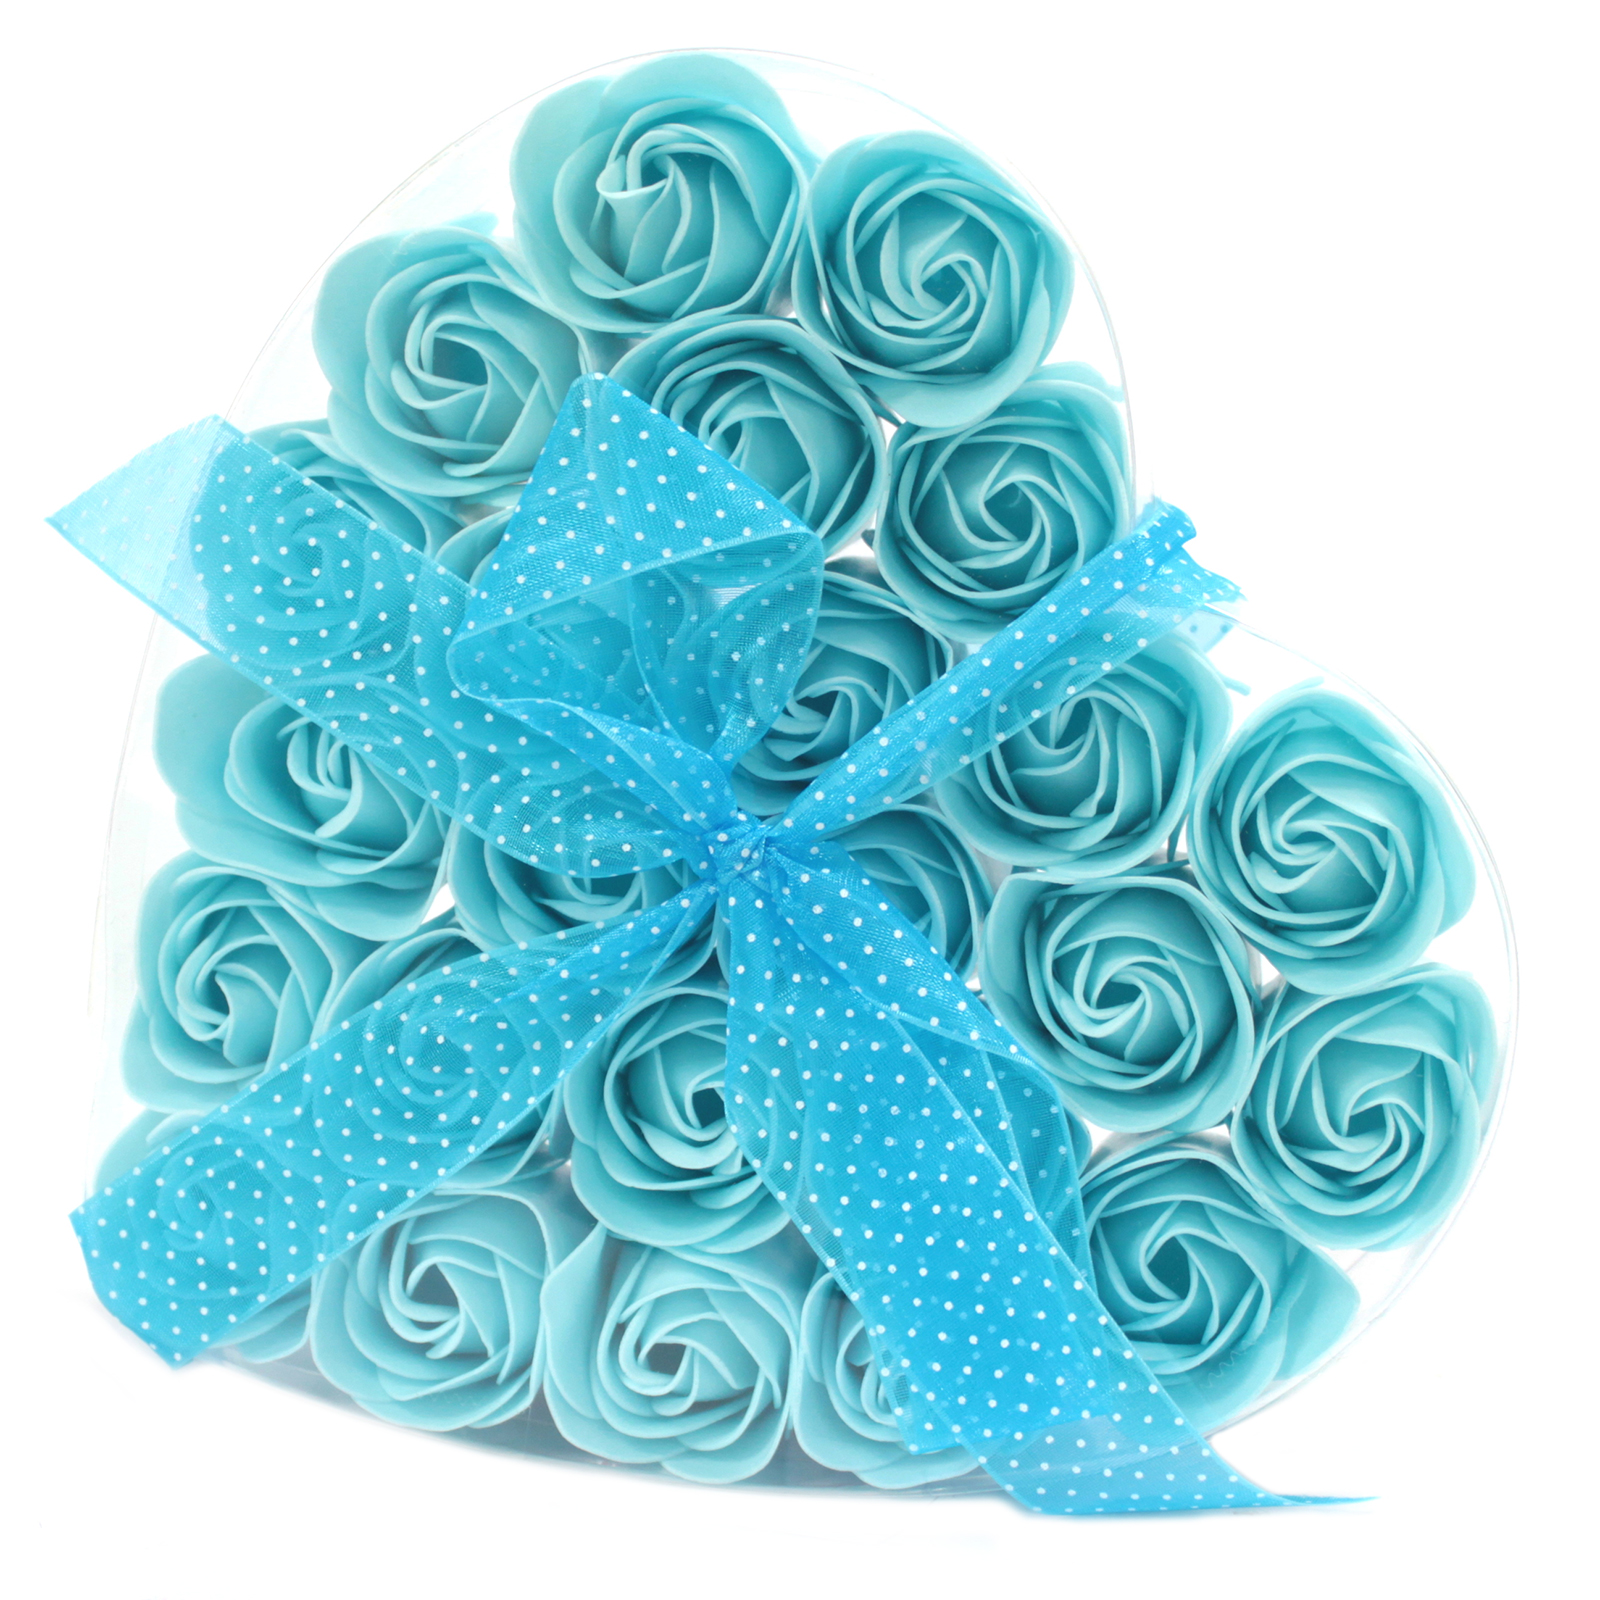 1x Set of 24 Soap Flower Heart Box - Blue Roses